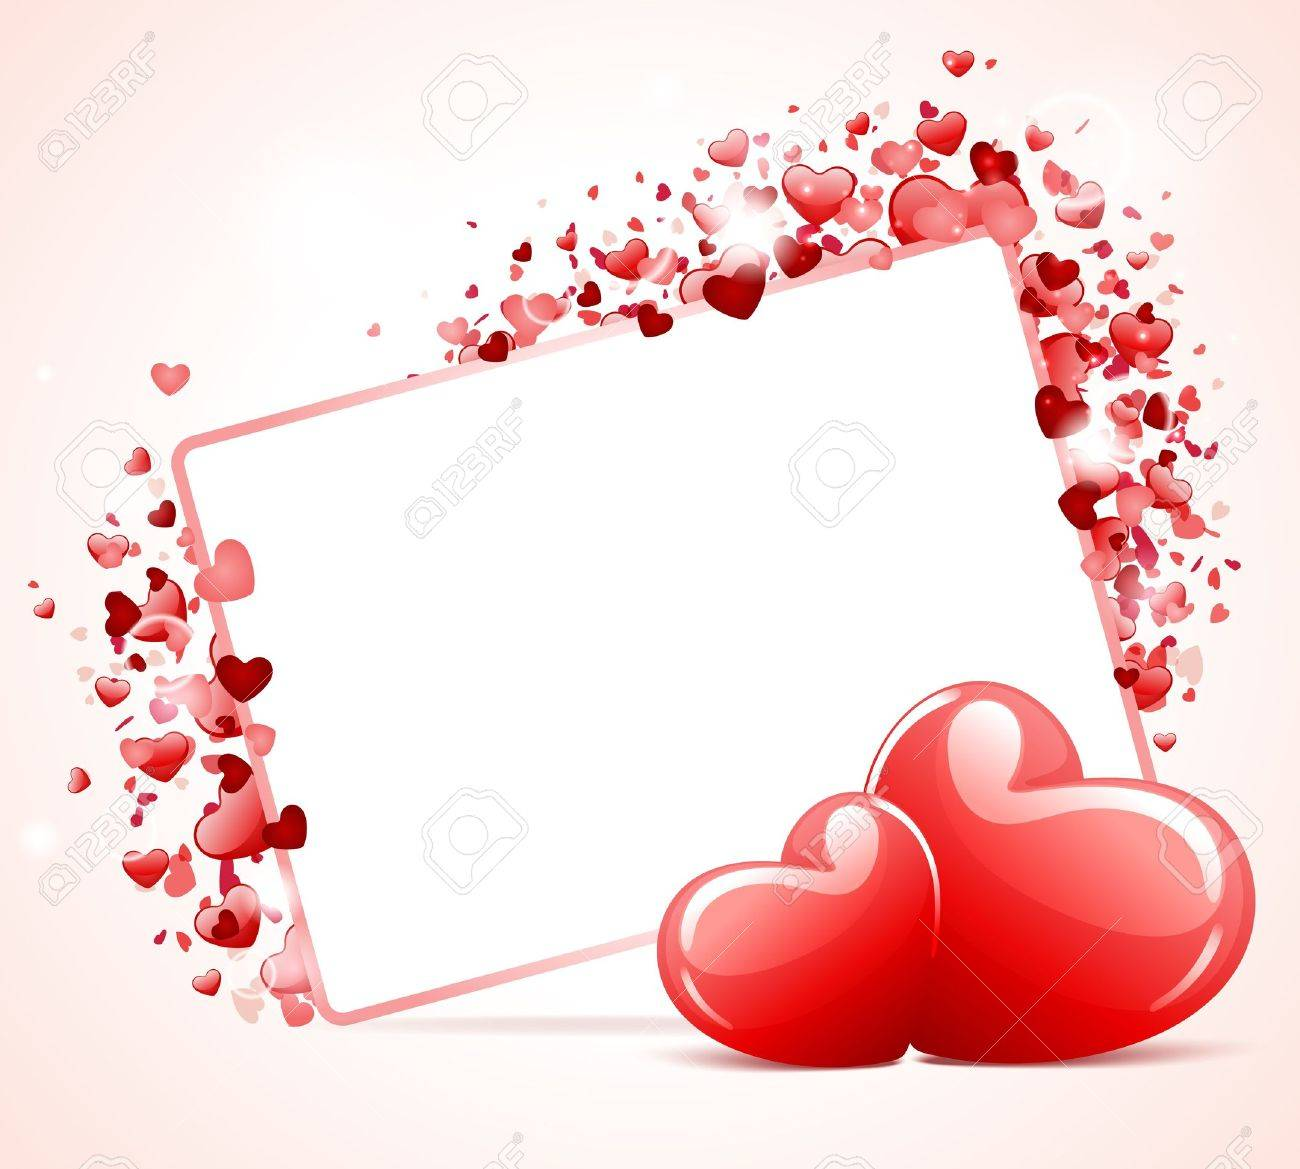 Valentine Day Card With Two Hearts Vector Background Royalty Free